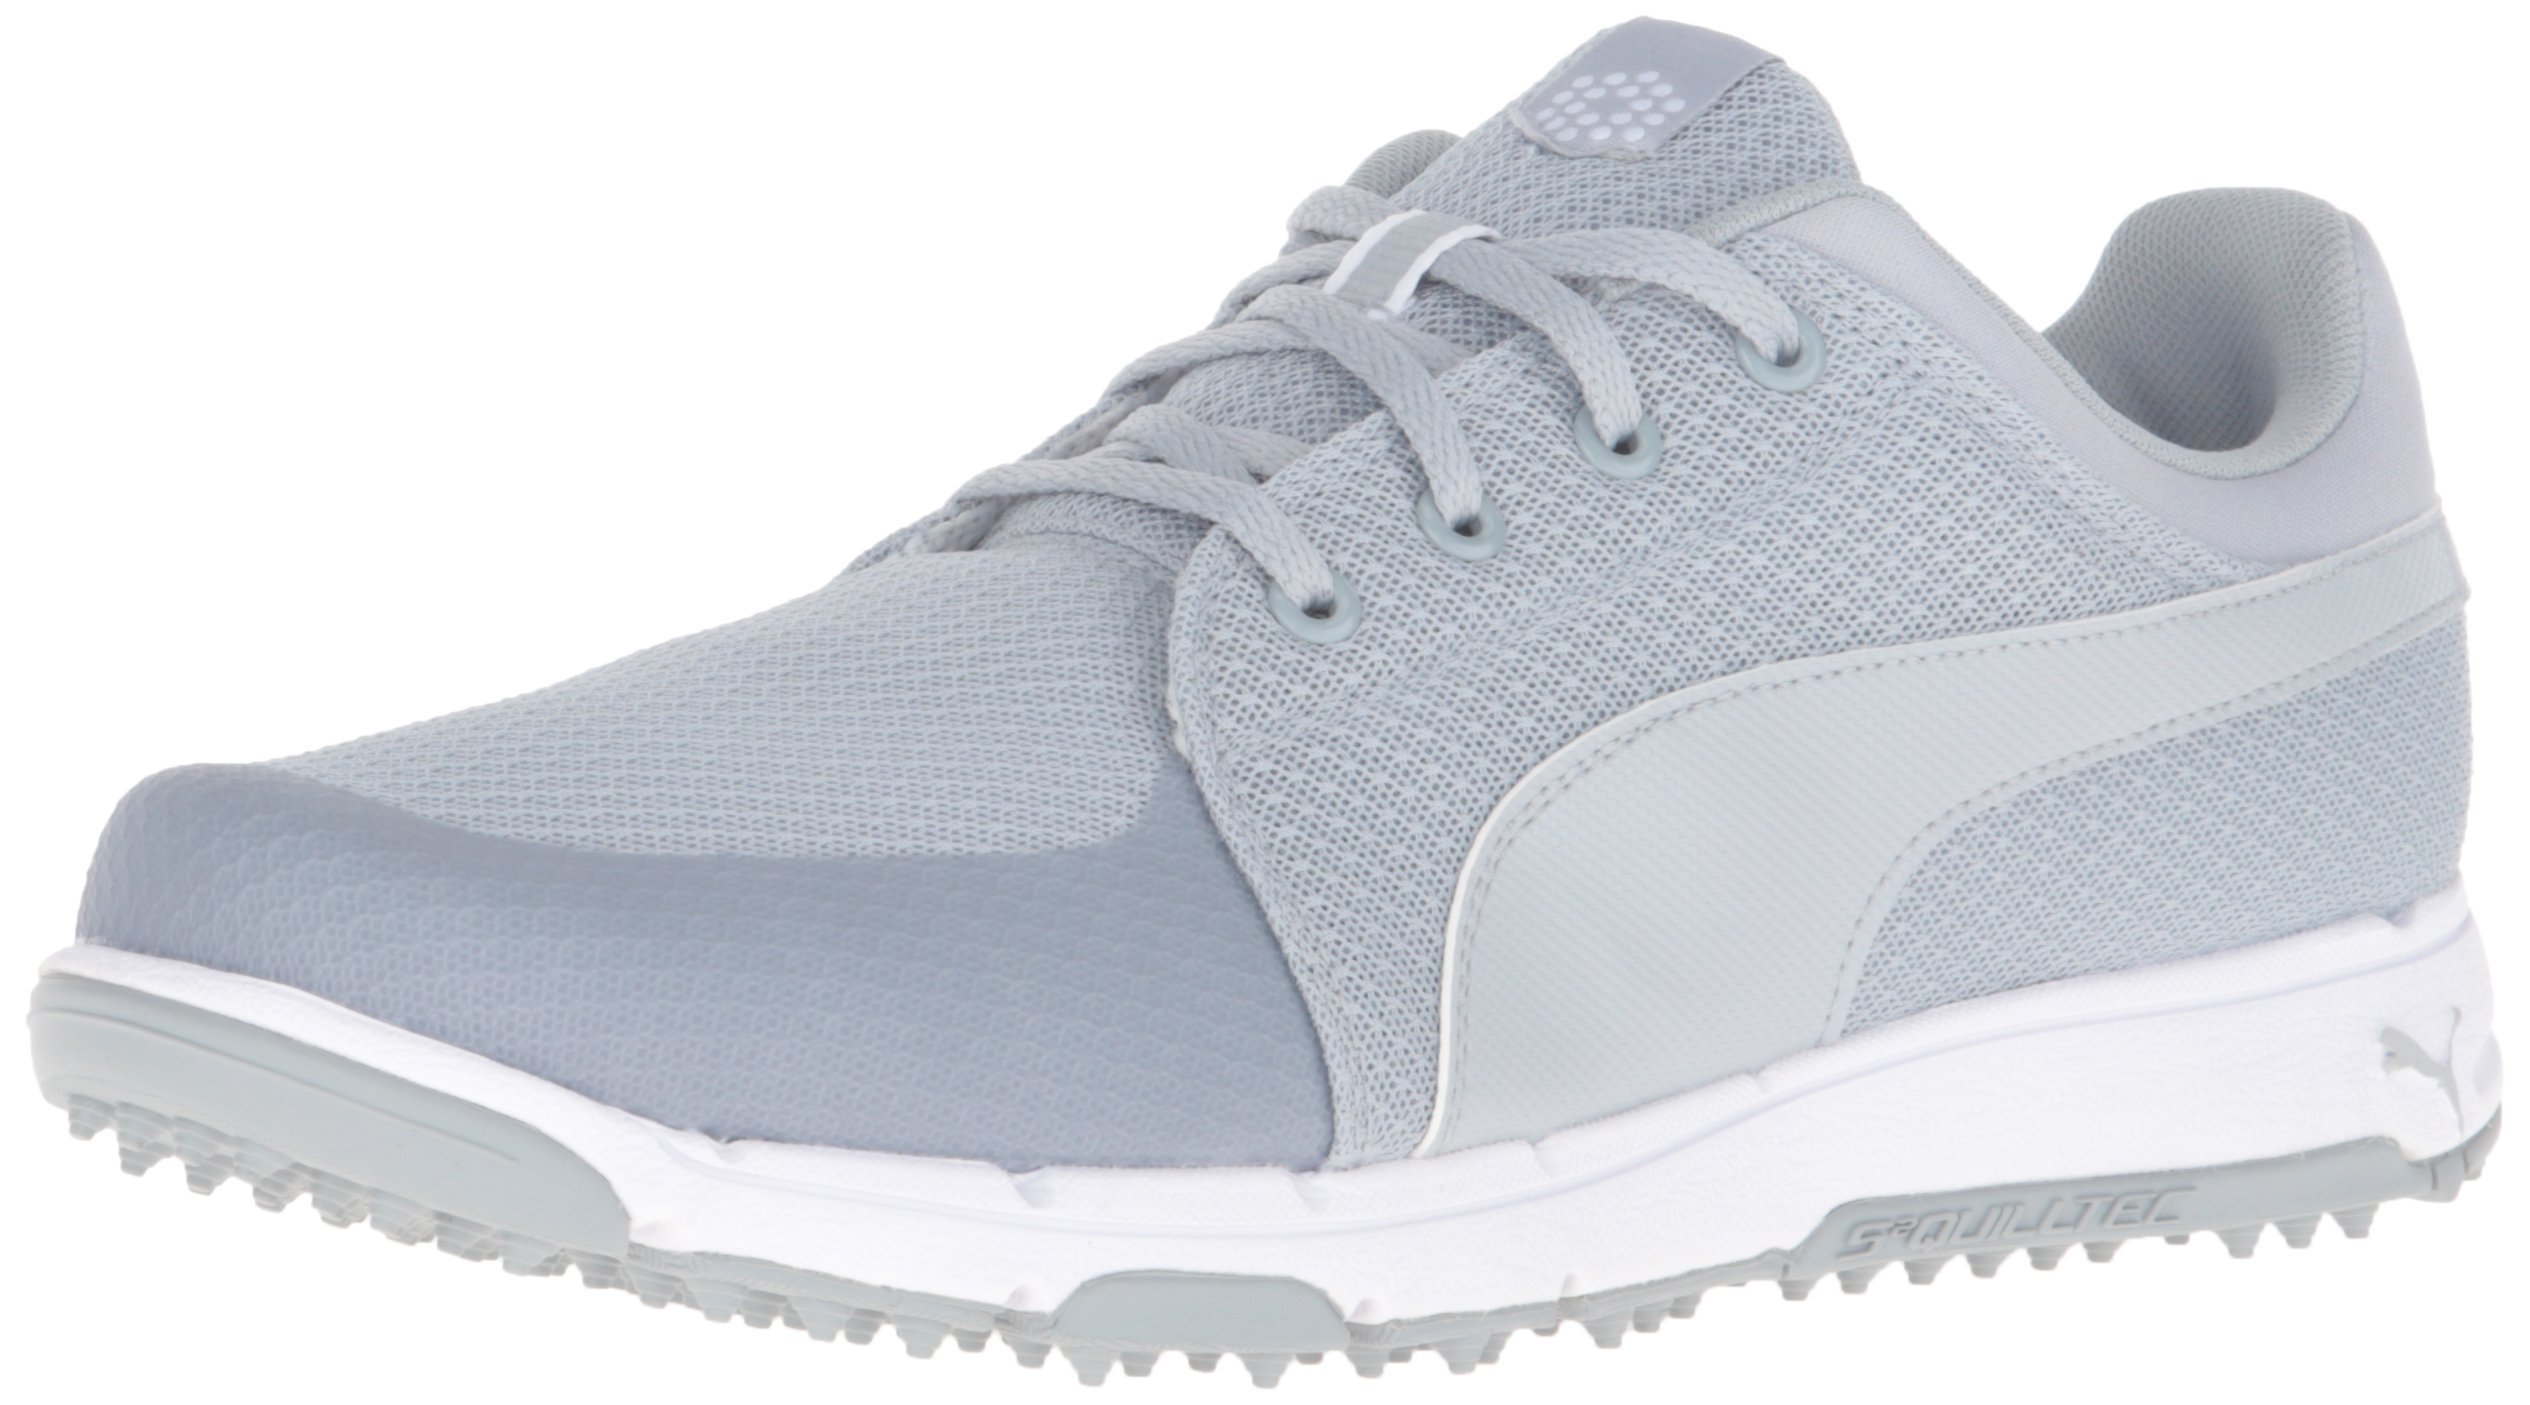 PUMA Men's Grip Sport Golf Shoe, Quarry/White, 10 Medium by PUMA